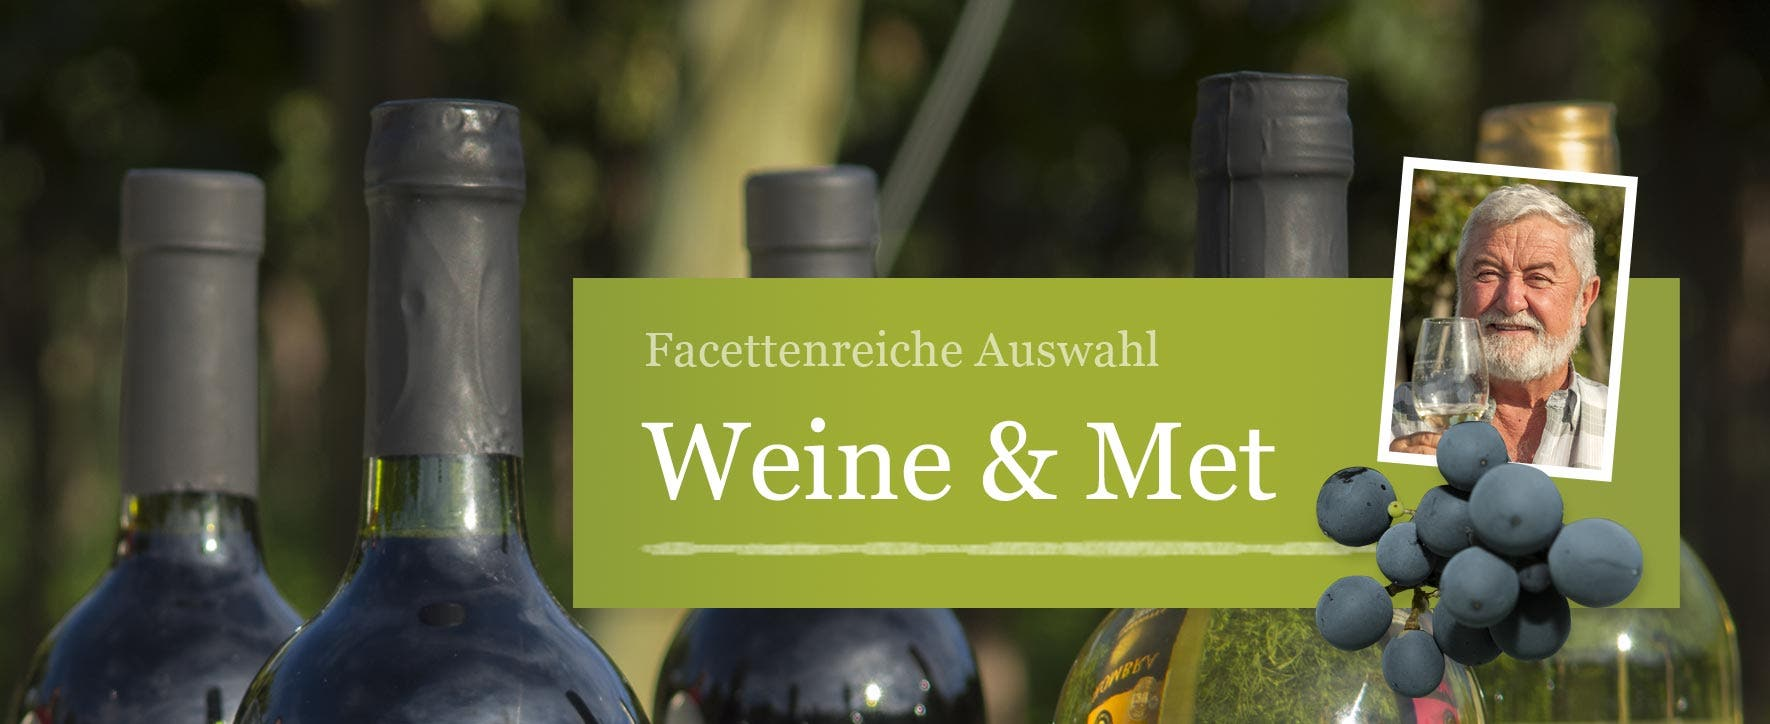 Weine & Met - Foto: GEPA - The Fair Trade Company / C. Nusch